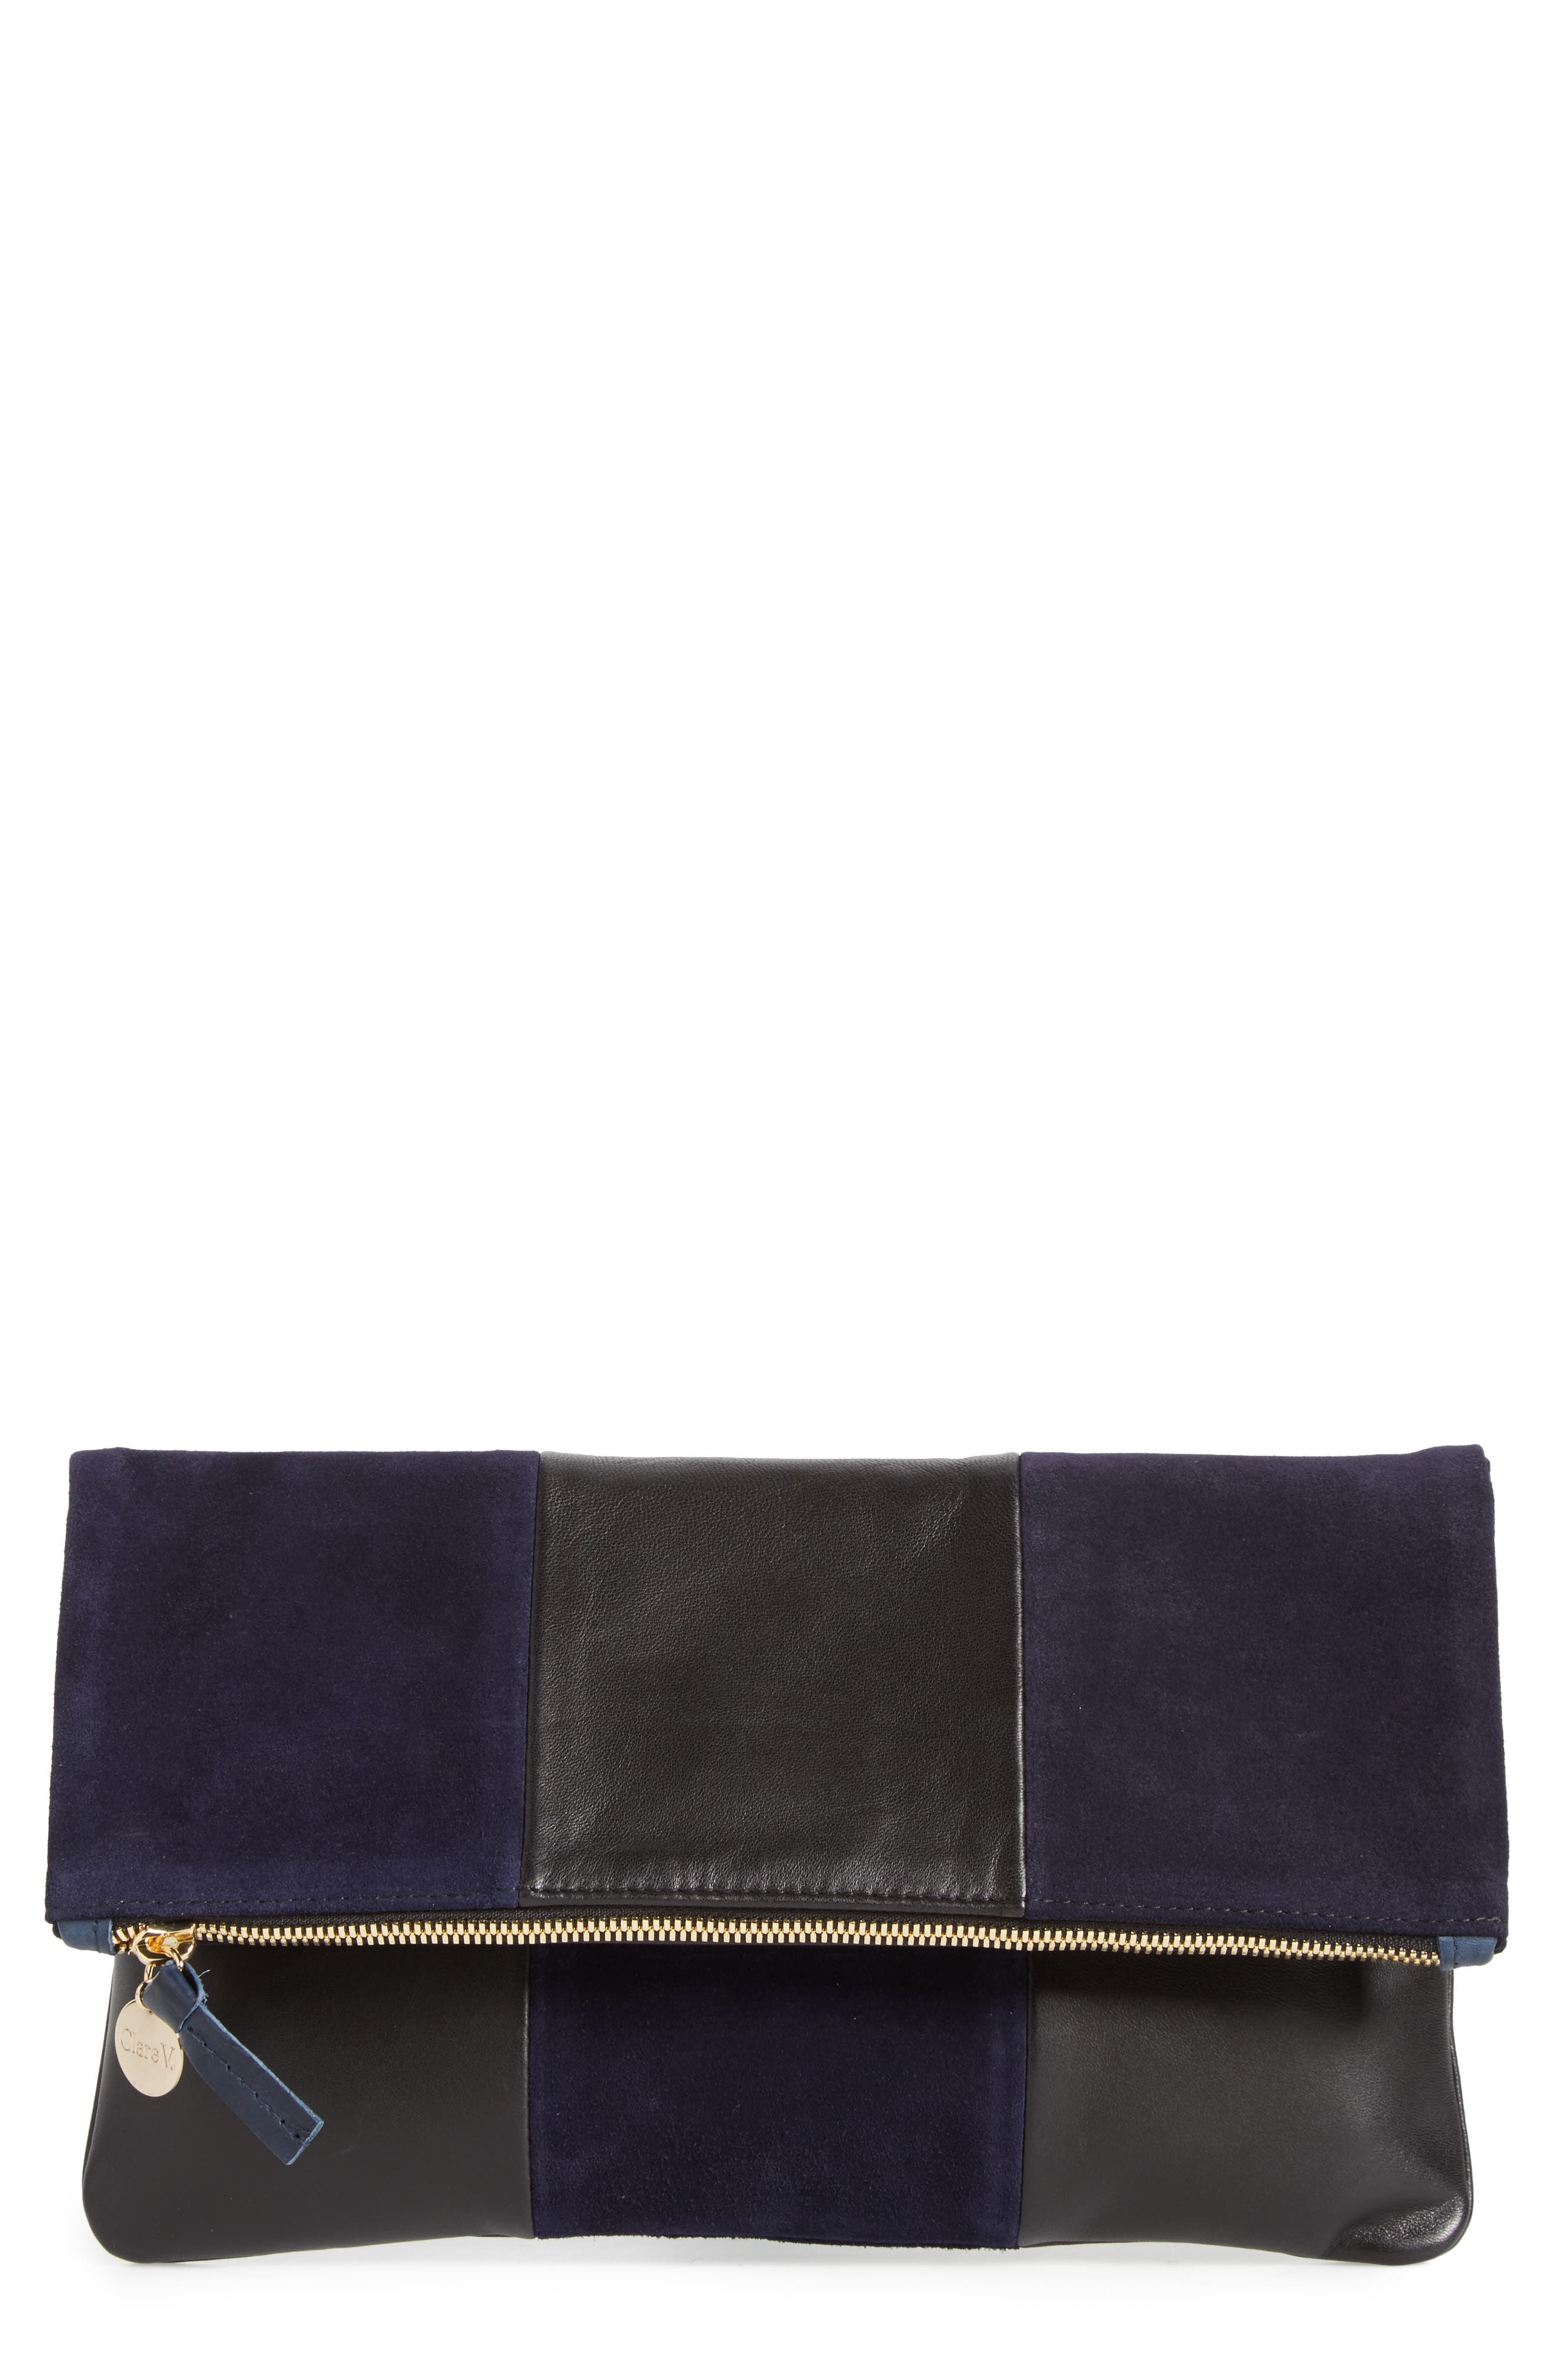 Leather & Suede Foldover Clutch,                         Main,                         color, Black Nappa/ Navy Suede